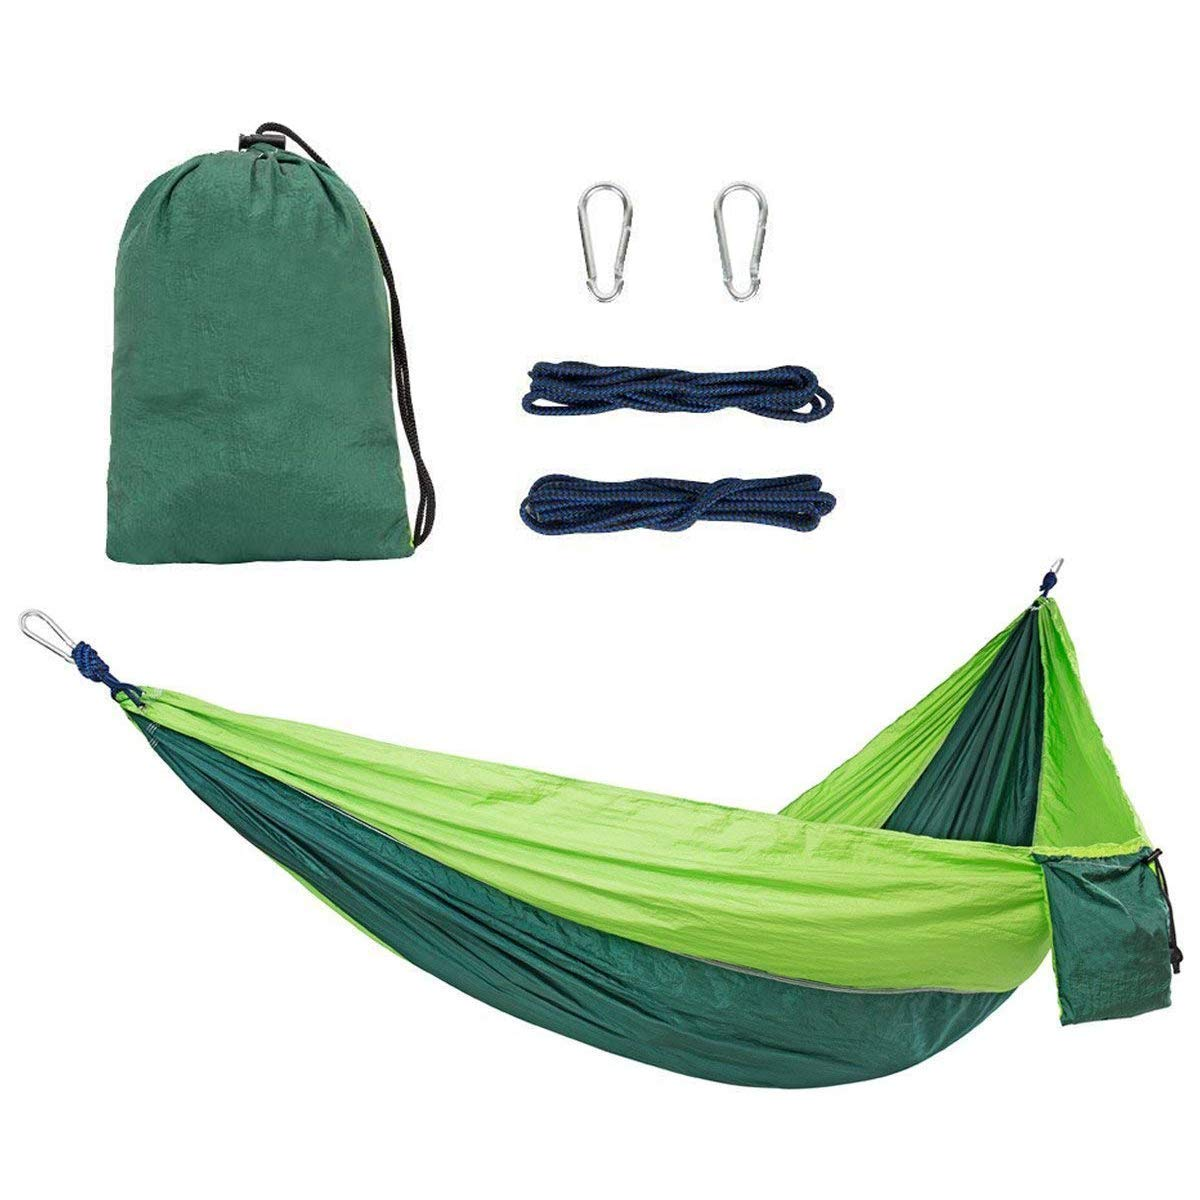 Forbidden Road Hammock Single Double Camping Lightweight Portable Parachute Hammock for Outdoor Hiking Travel Backpacking - Nylon Hammock Swing - Support 400lbs Ropes Carabiners 11 Colors